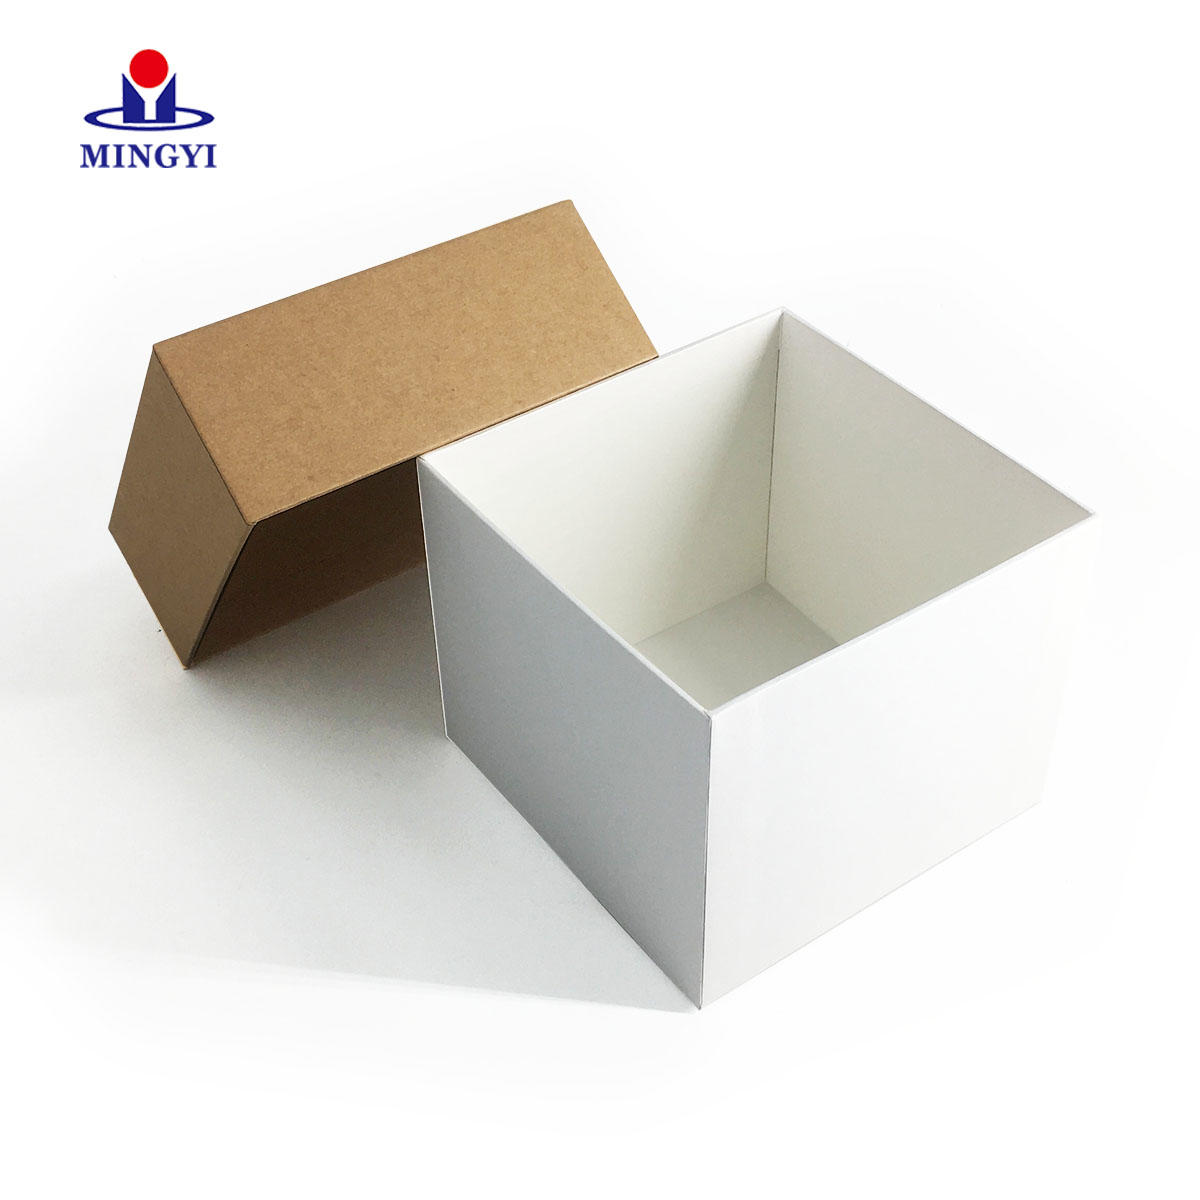 New design square gift packaging box with lid open used for souvenir make in china